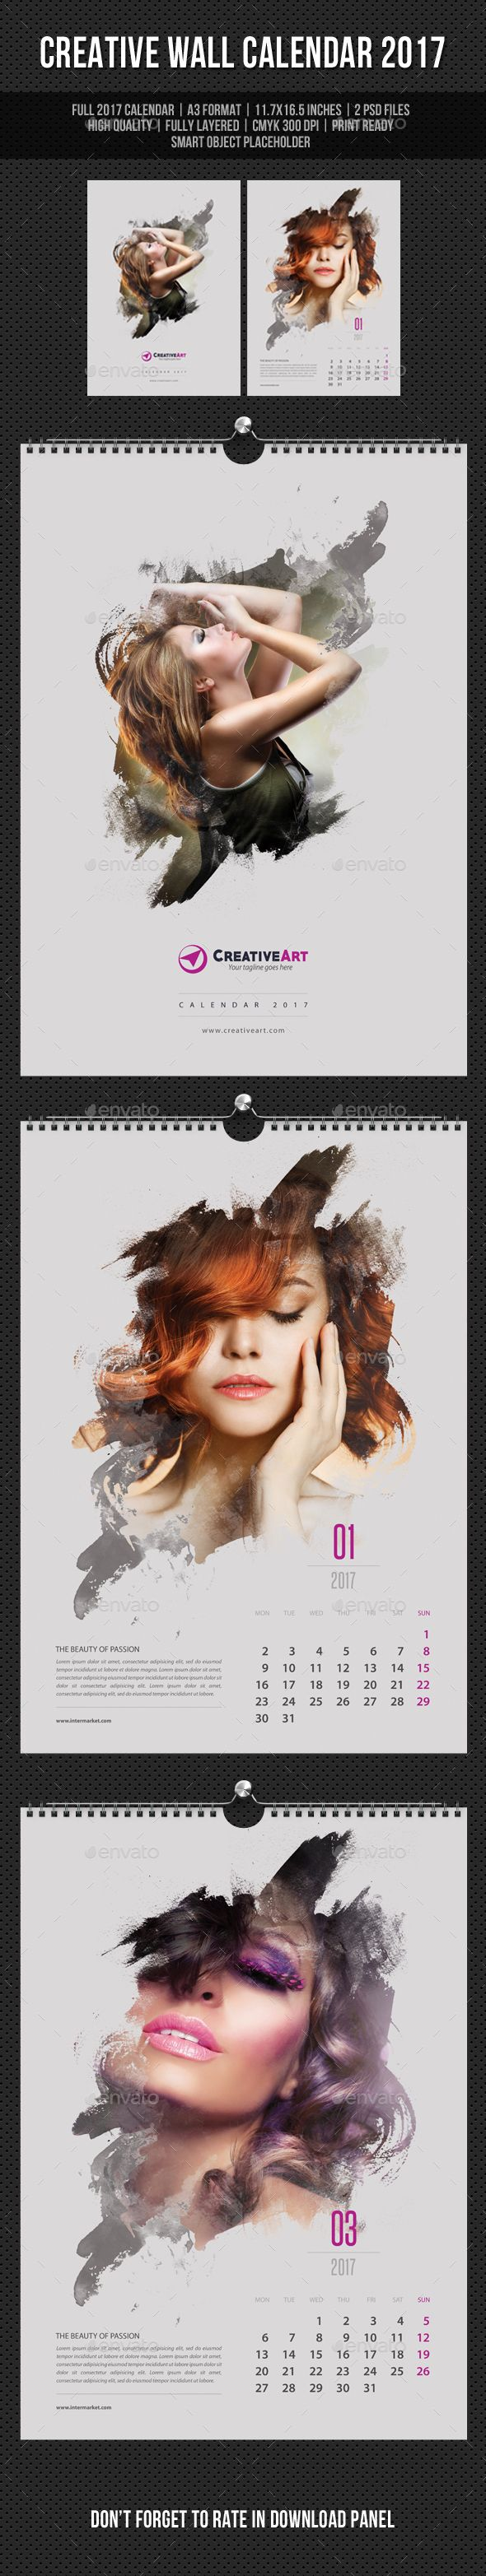 Creative Wall Calendar Design 2017 V06 - Calendars Template PSD. Download here: https://graphicriver.net/item/creative-wall-calendar-2017-v06/16947926?s_rank=139&ref=yinkira